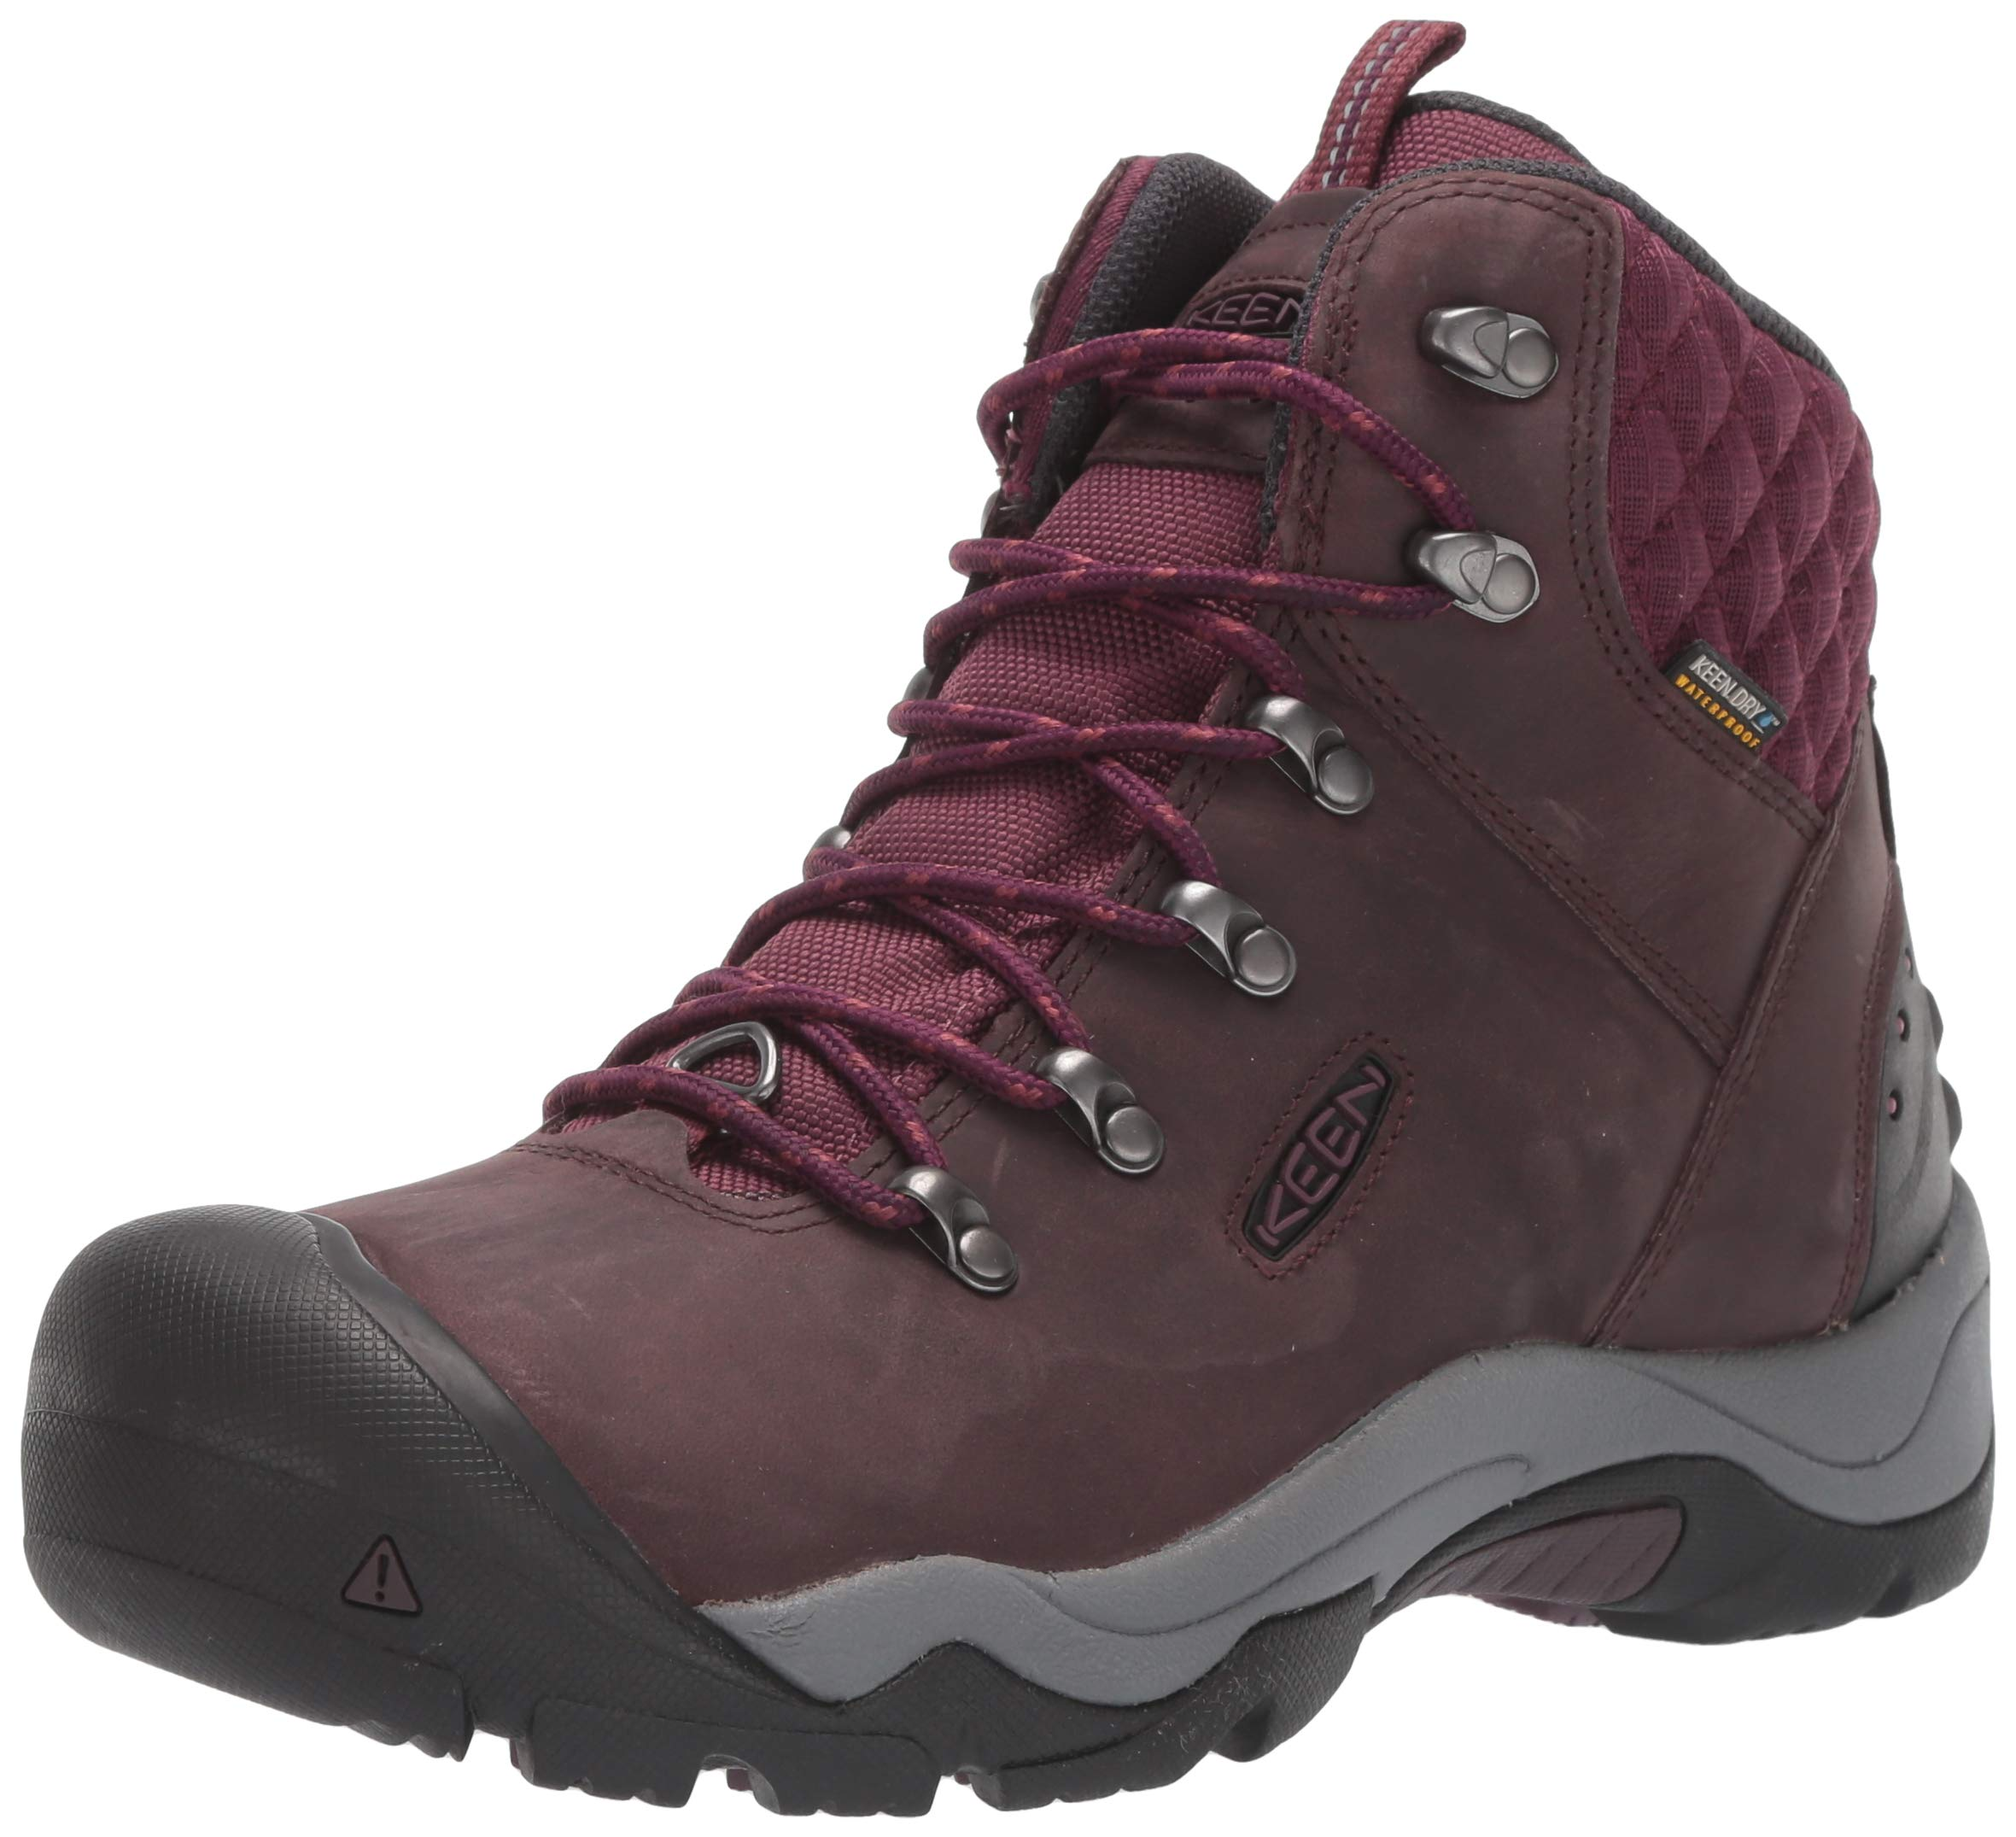 KEEN Women's Revel III Boot, Peppercorn/Eggplant, 9 M US by KEEN